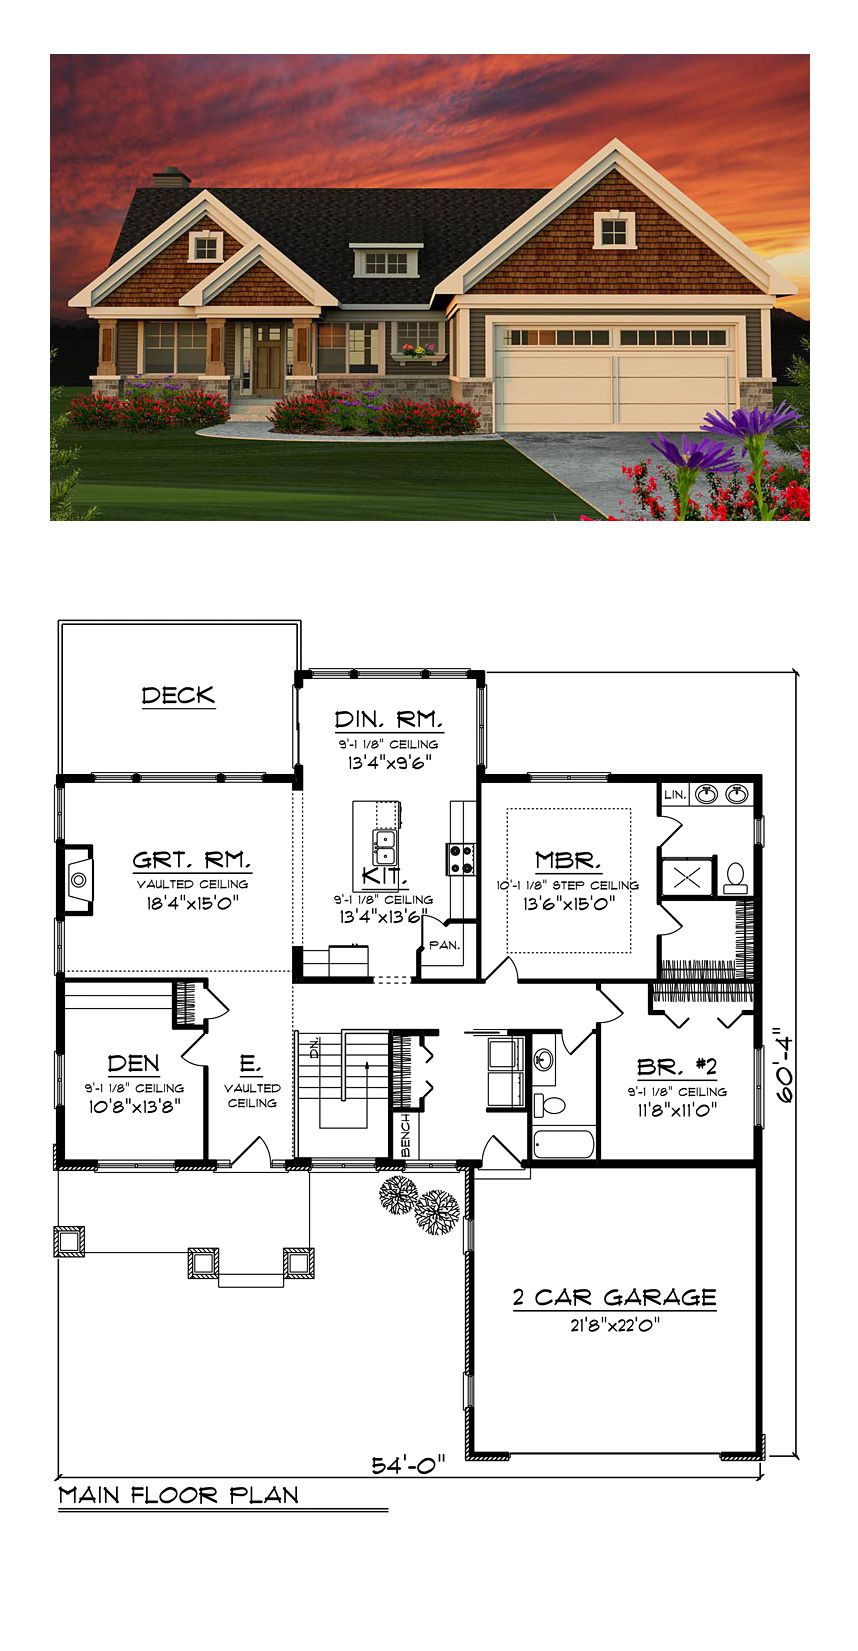 Two Bedroom House Plans with Garage New Traditional Style House Plan with 2 Bed 2 Bath 2